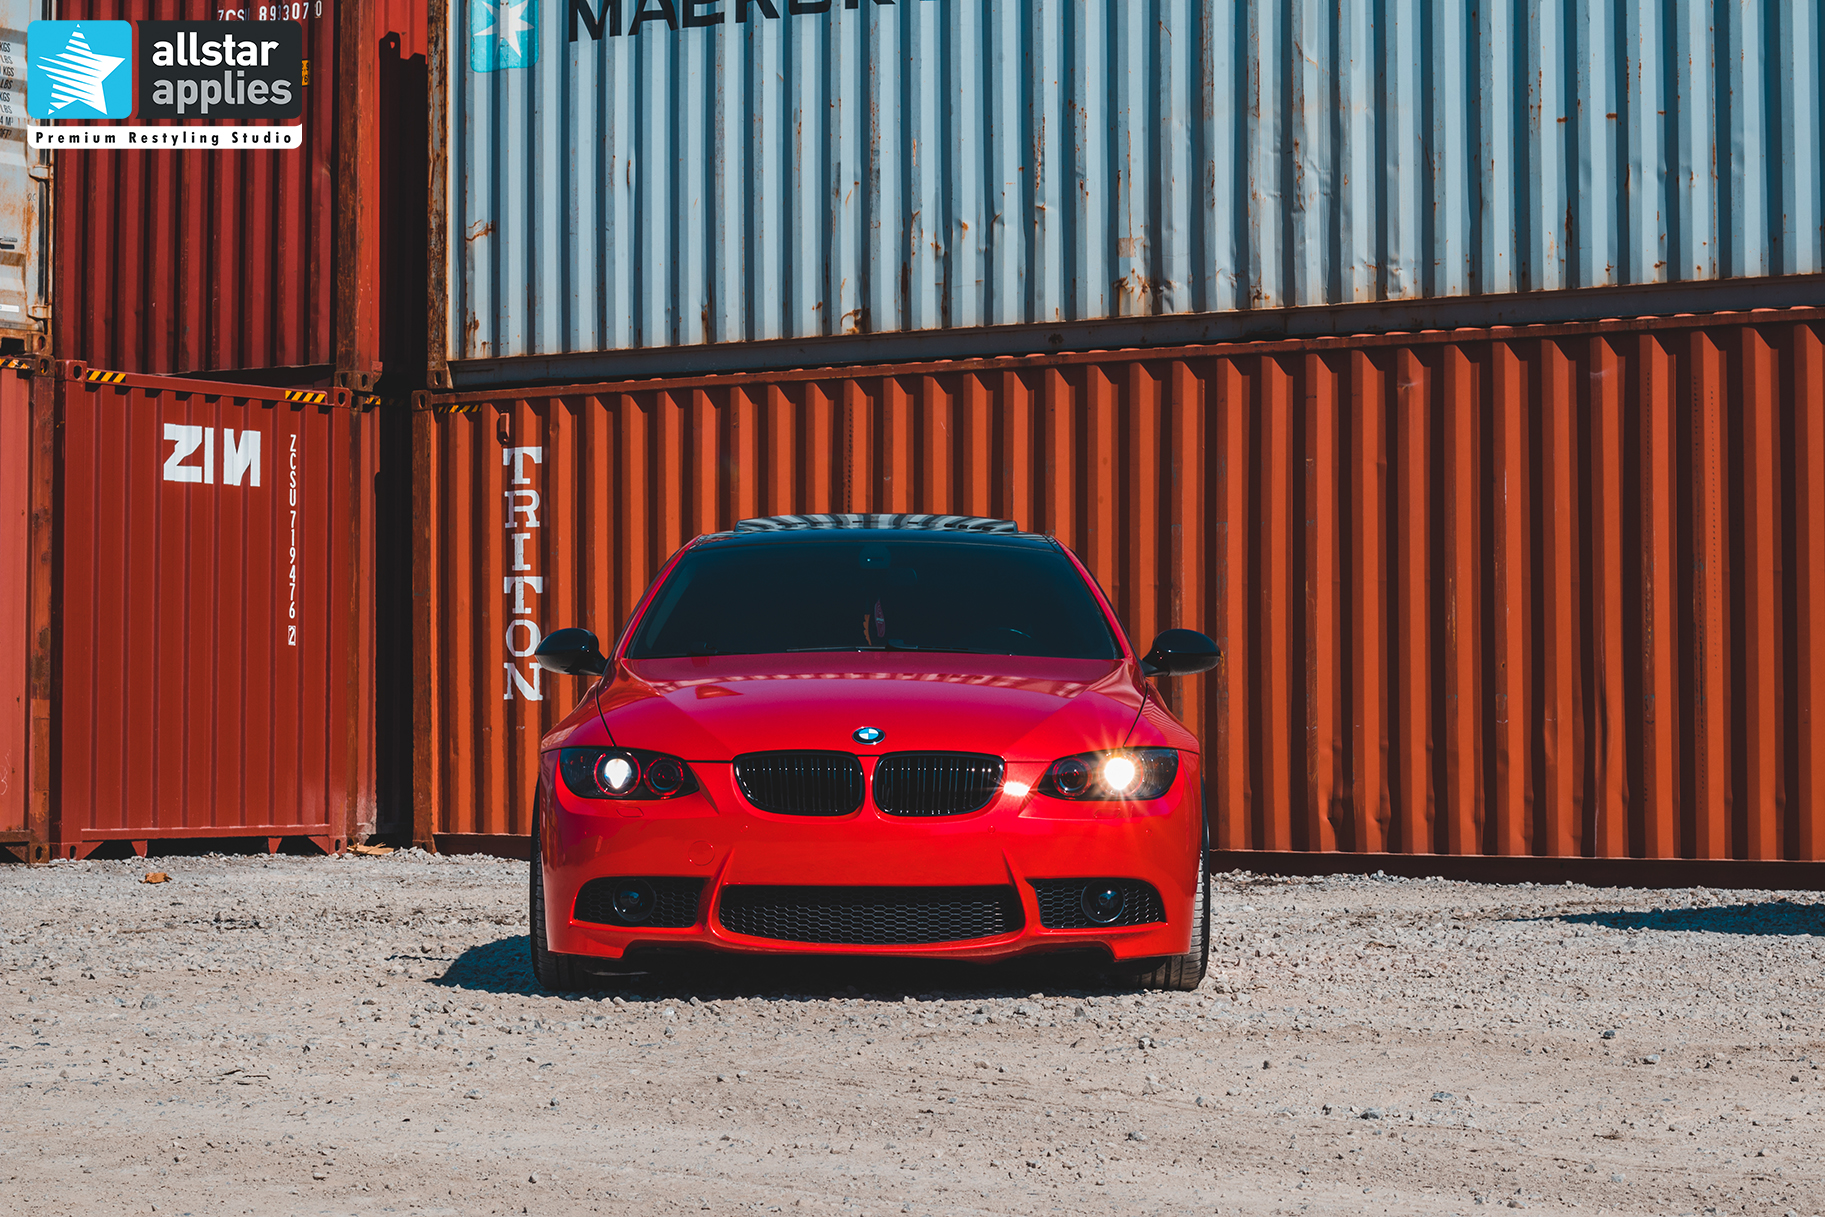 BMW E92 LUSCIOUS RED LIPS ALLSTAR APPLIES 4